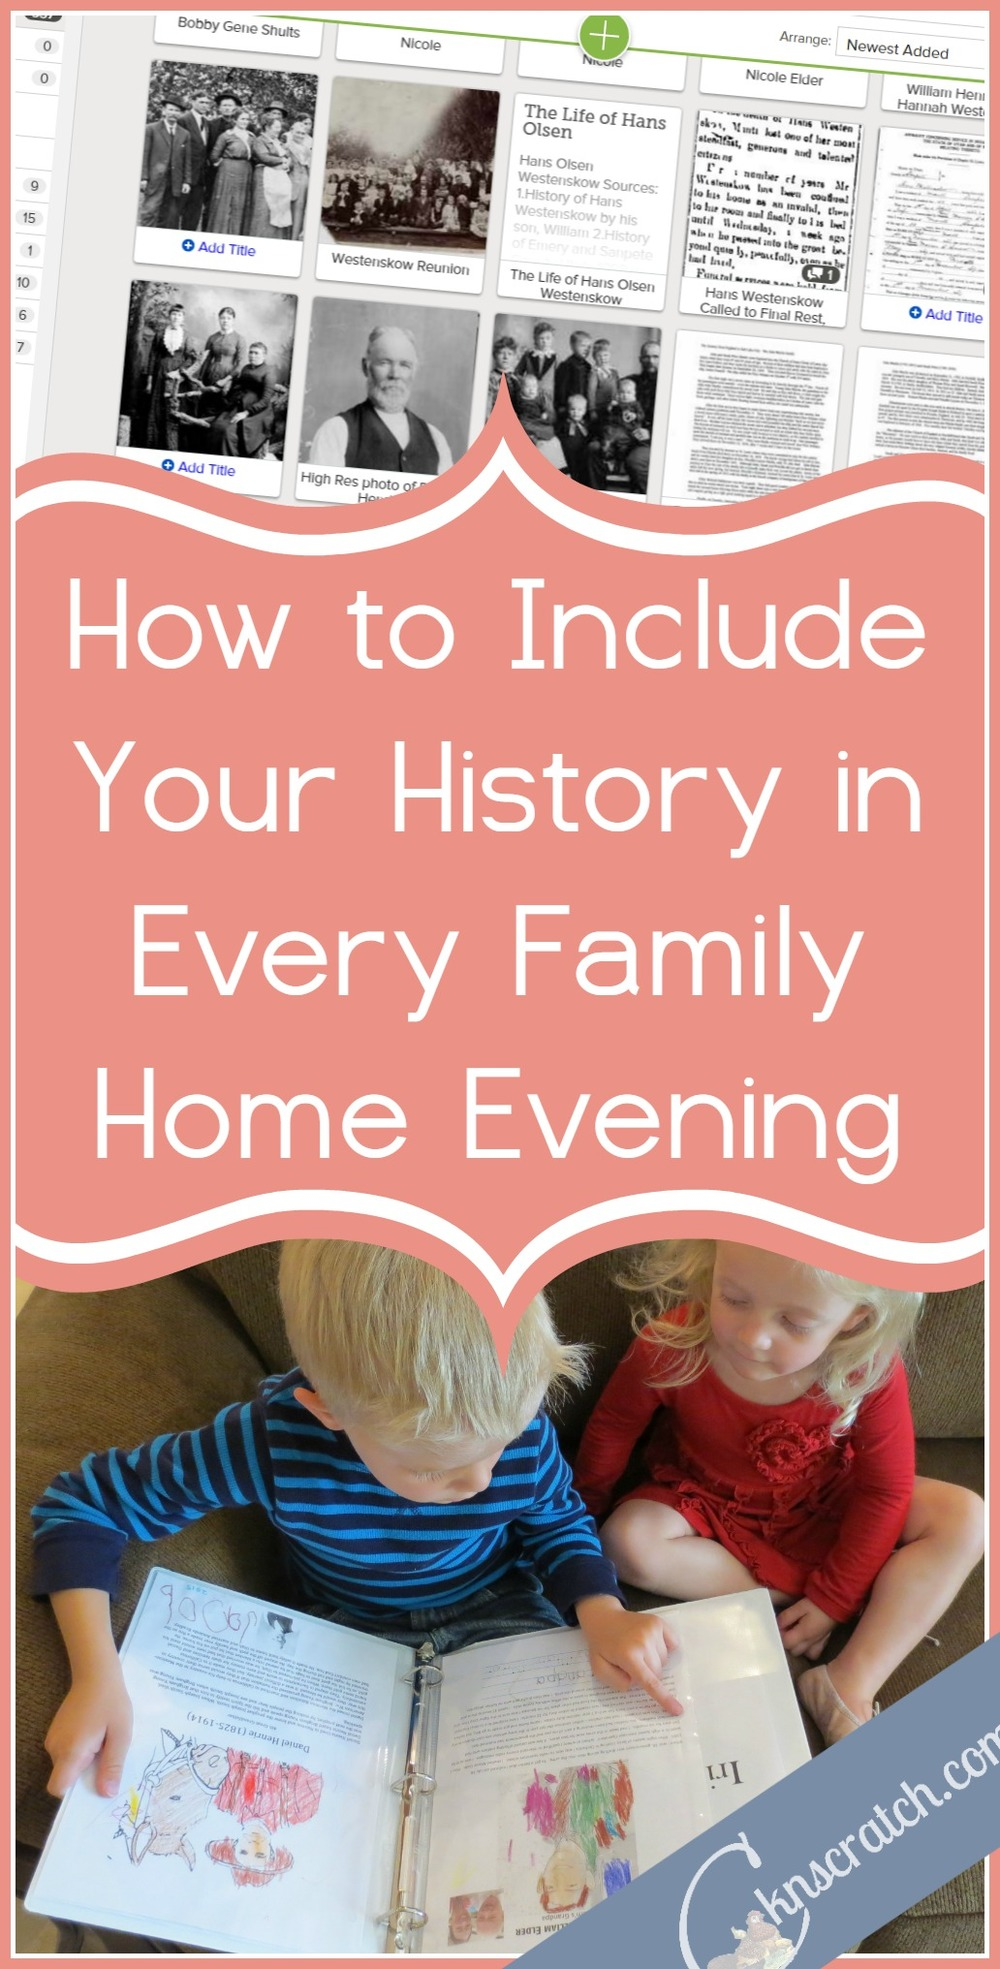 This is a great idea- easy way to include your family history stories in FHE